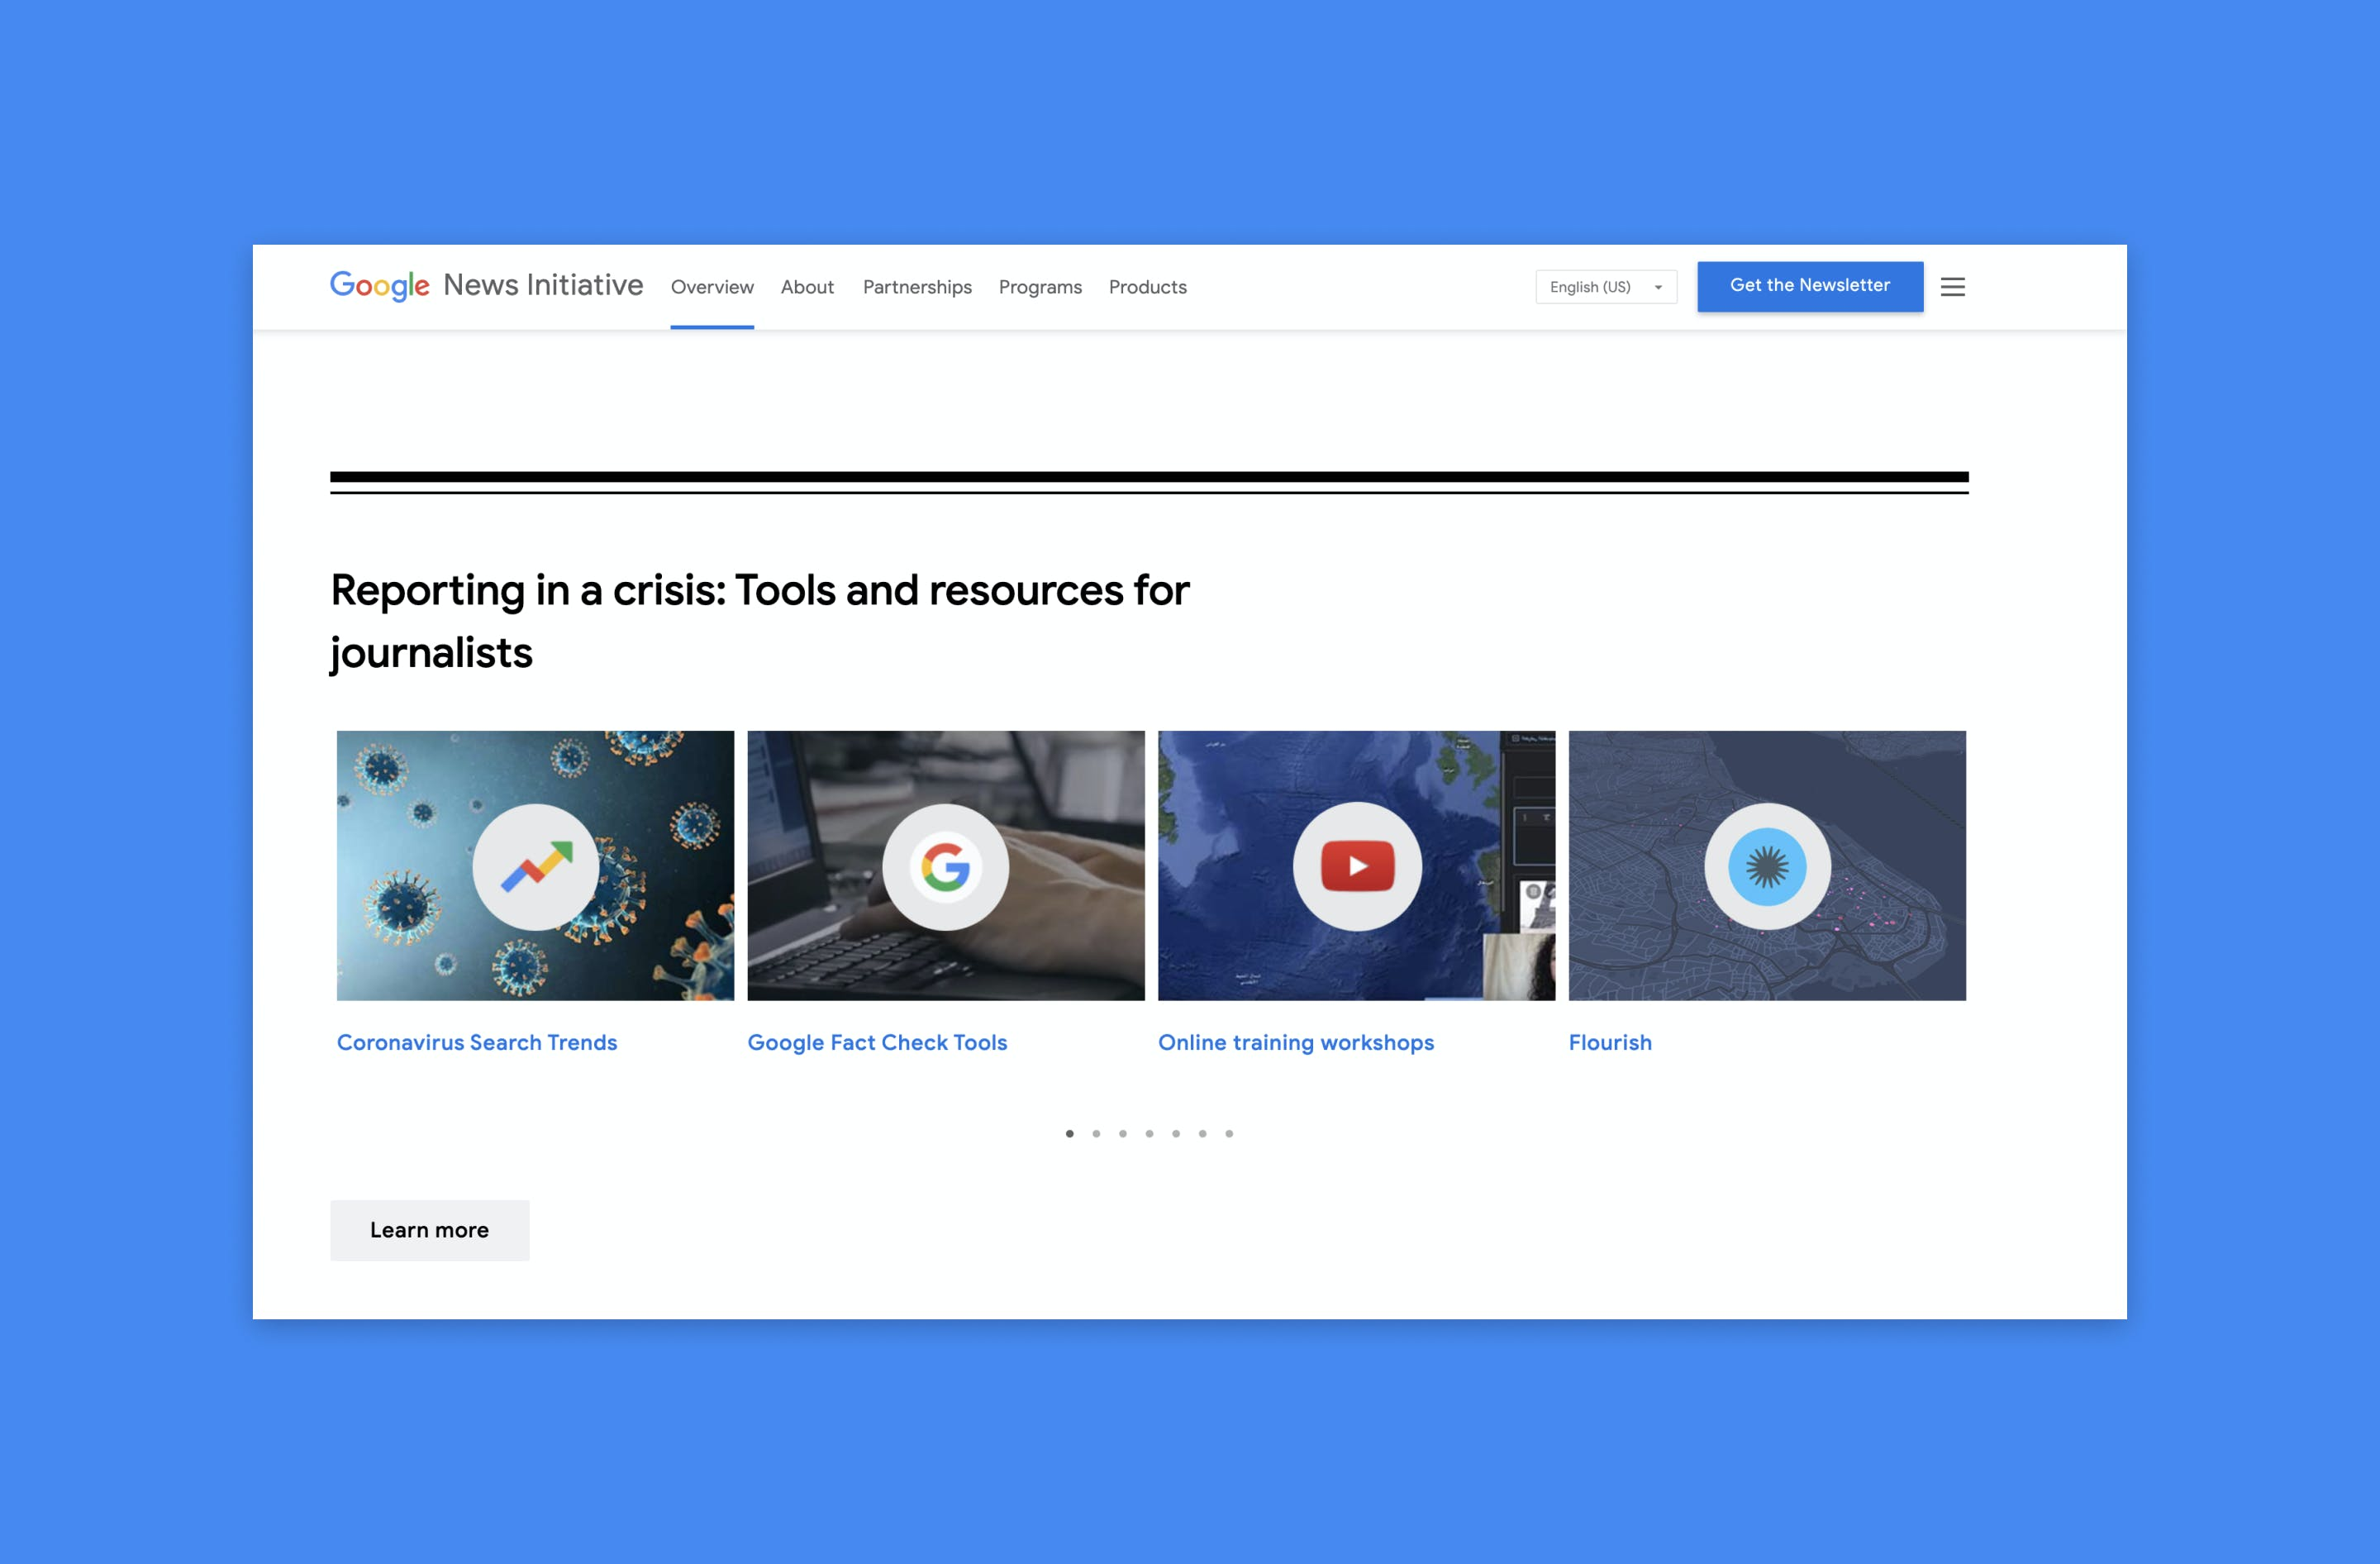 """Part of the Google News Initiative website is shown on a bright blue background. The site is showing a carousel of thumbnails titled """"Reporting in a crisis: Tools and resources for journalists"""""""